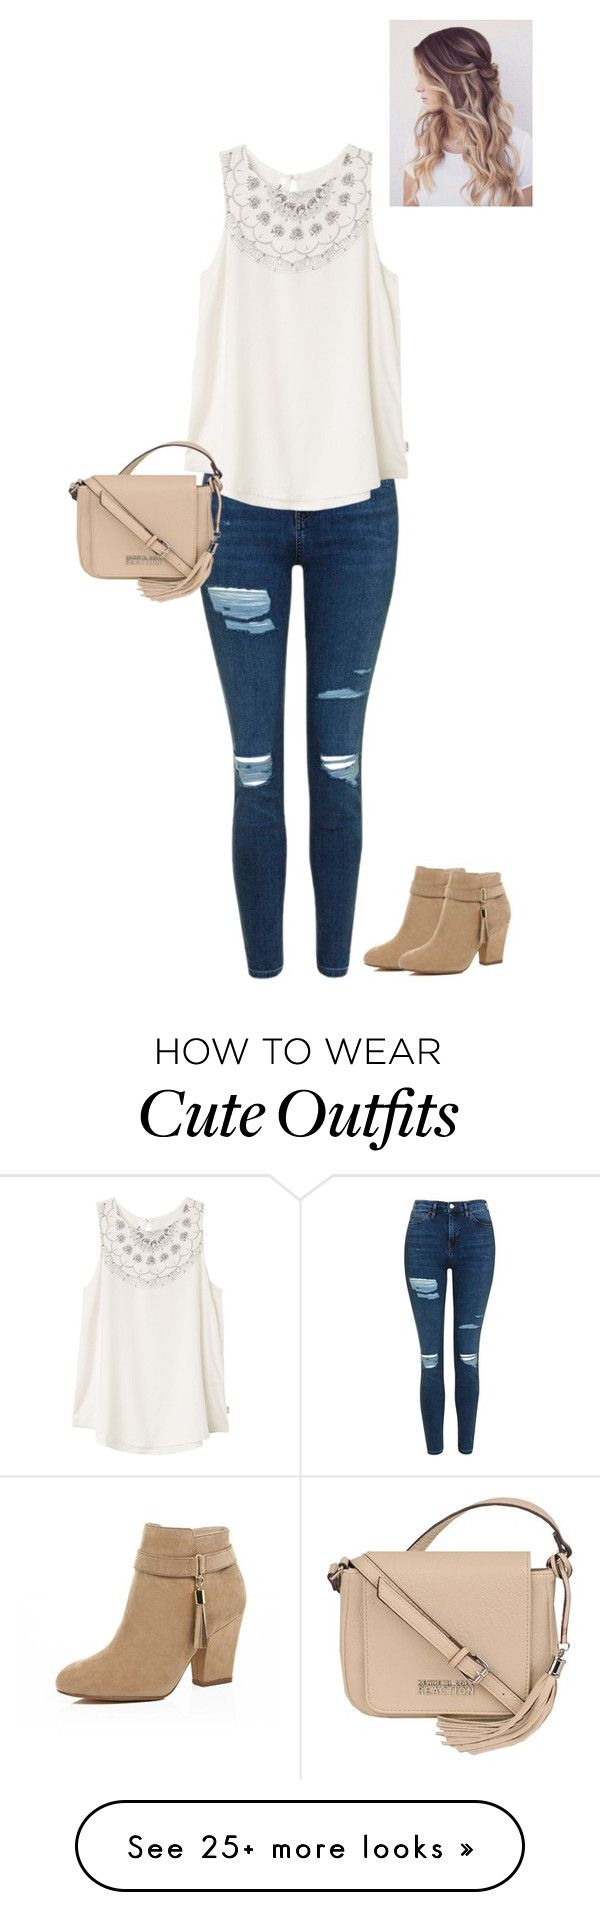 """Cute Summer Church Day outfit <3"" by loveisforever32 on Polyvore featuring Topshop, RVCA, River Island and Kenneth Cole"